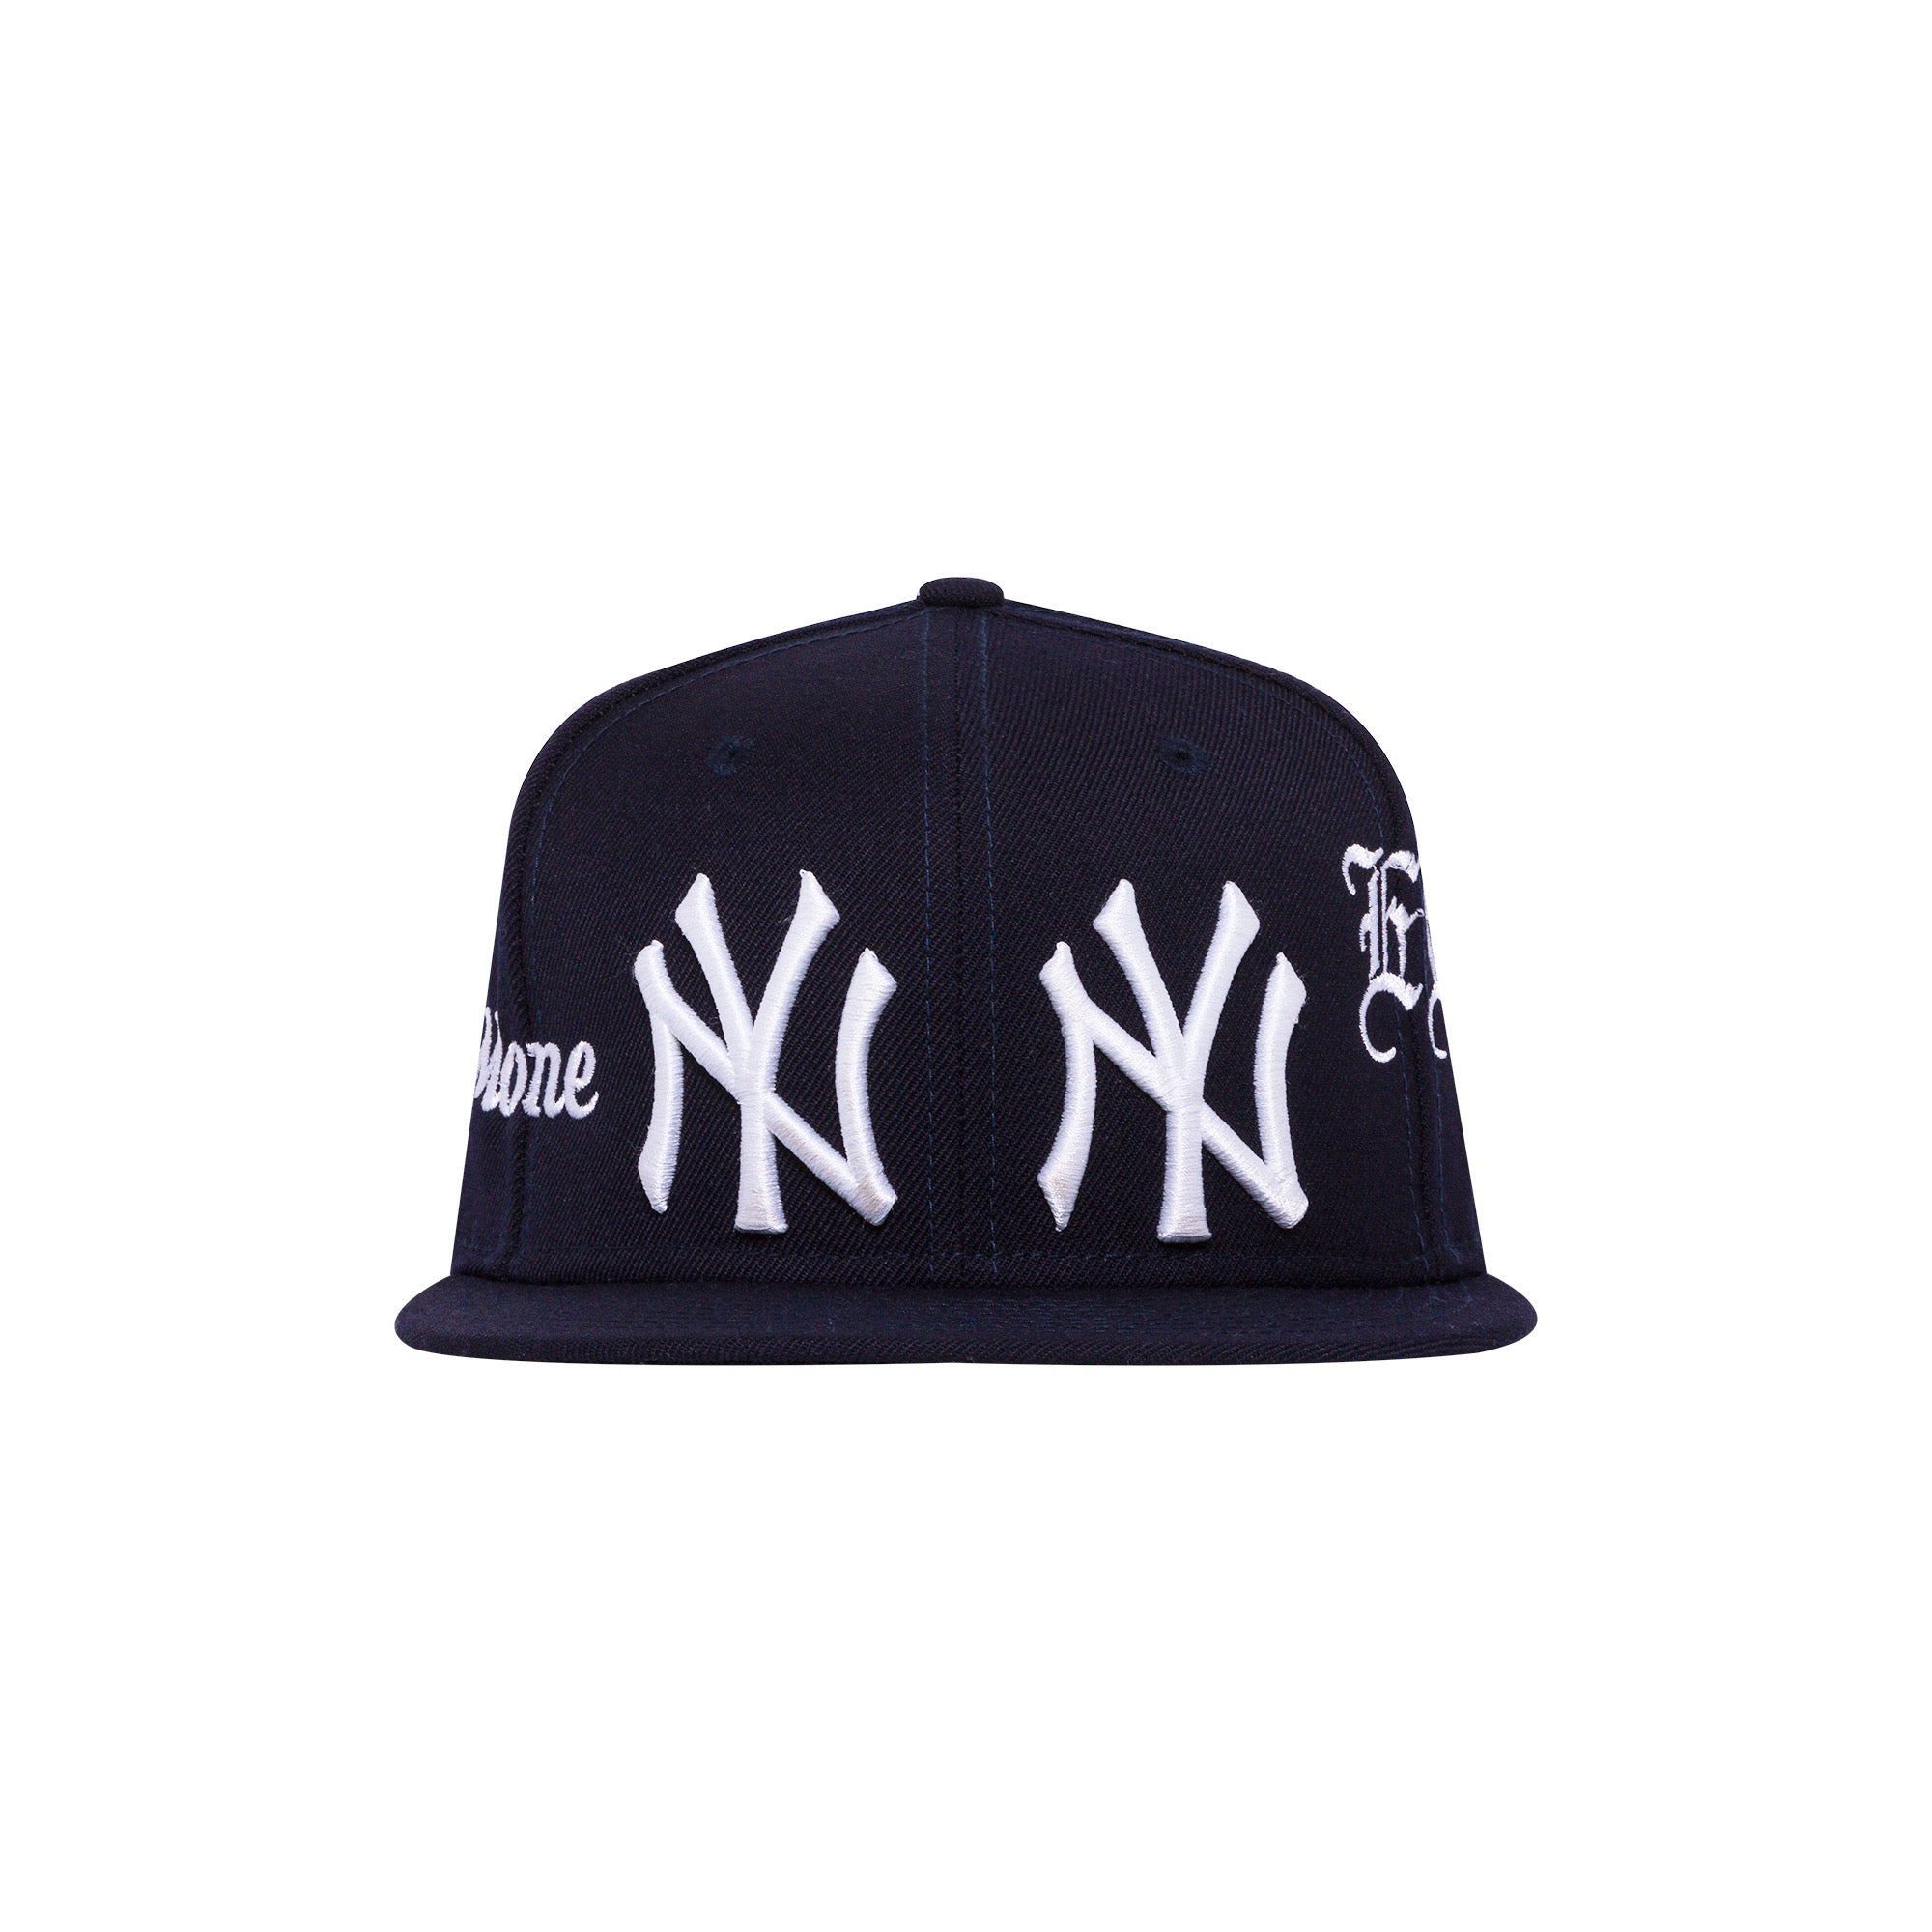 NEW MONEY NEW ERA NAVY BLUE